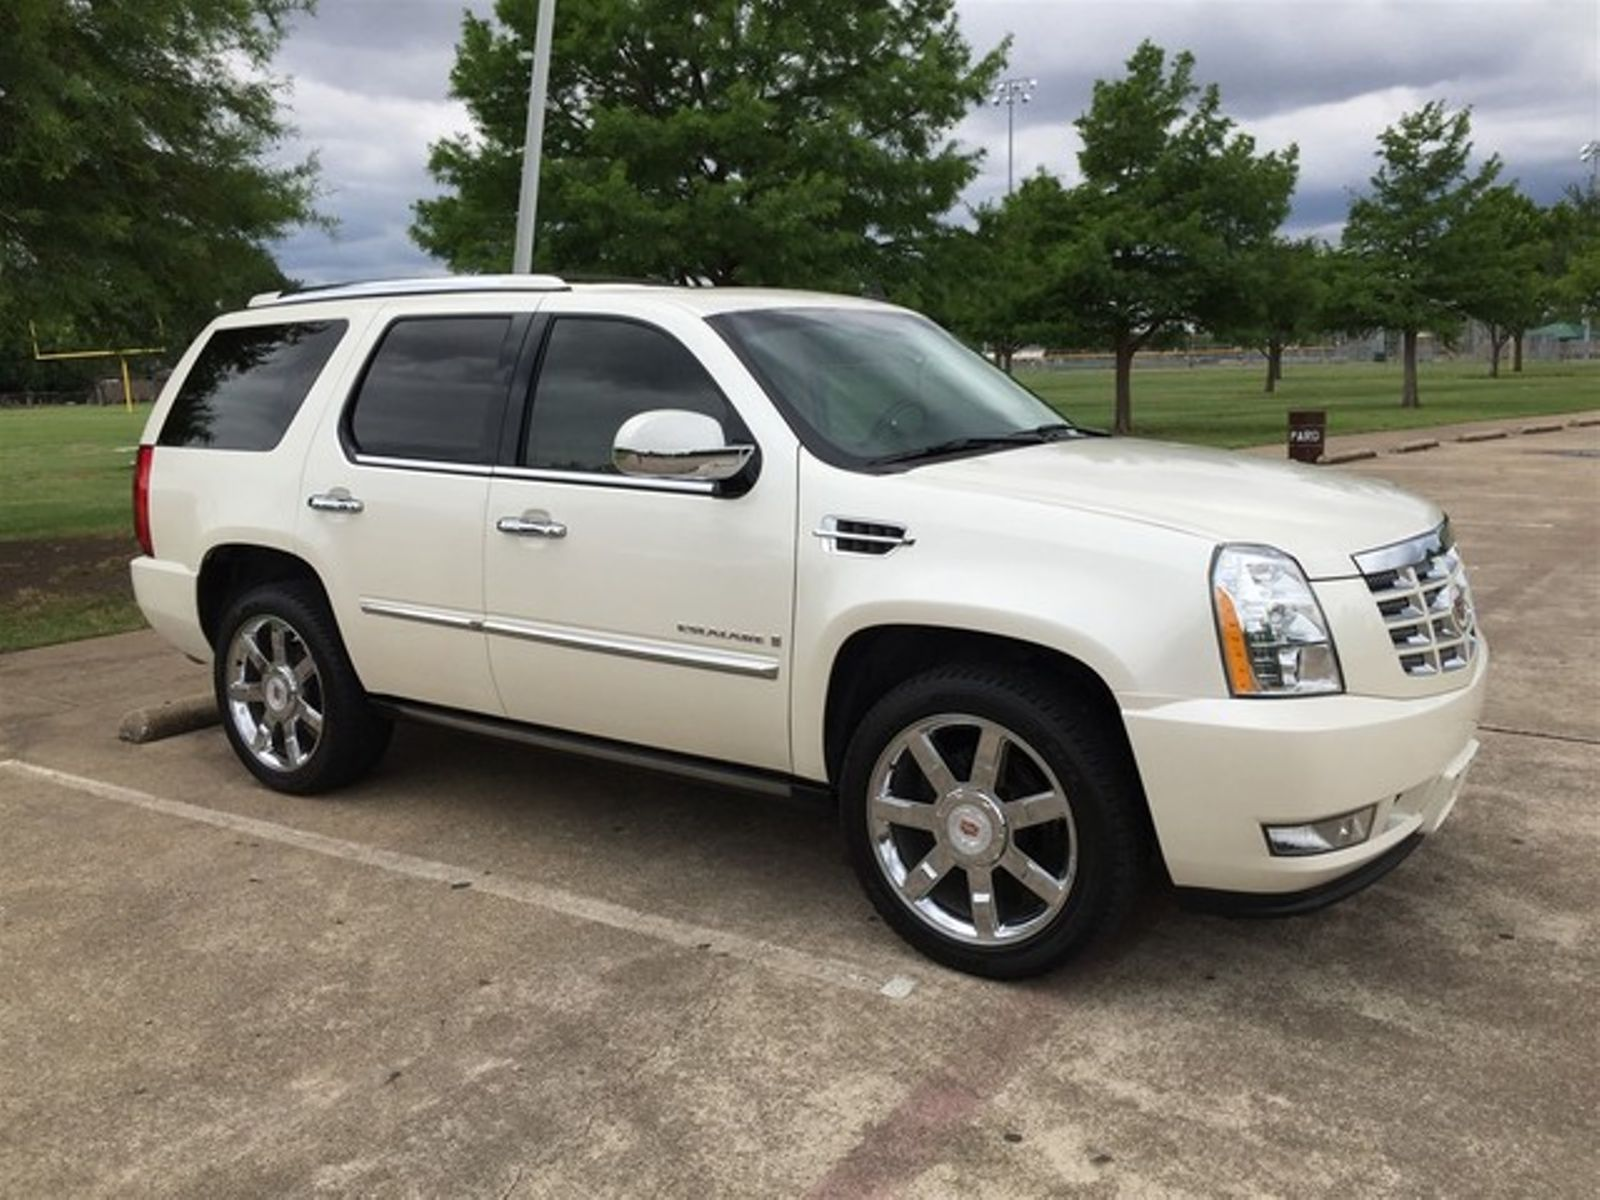 nite sale cadillac limo white for life car escalade